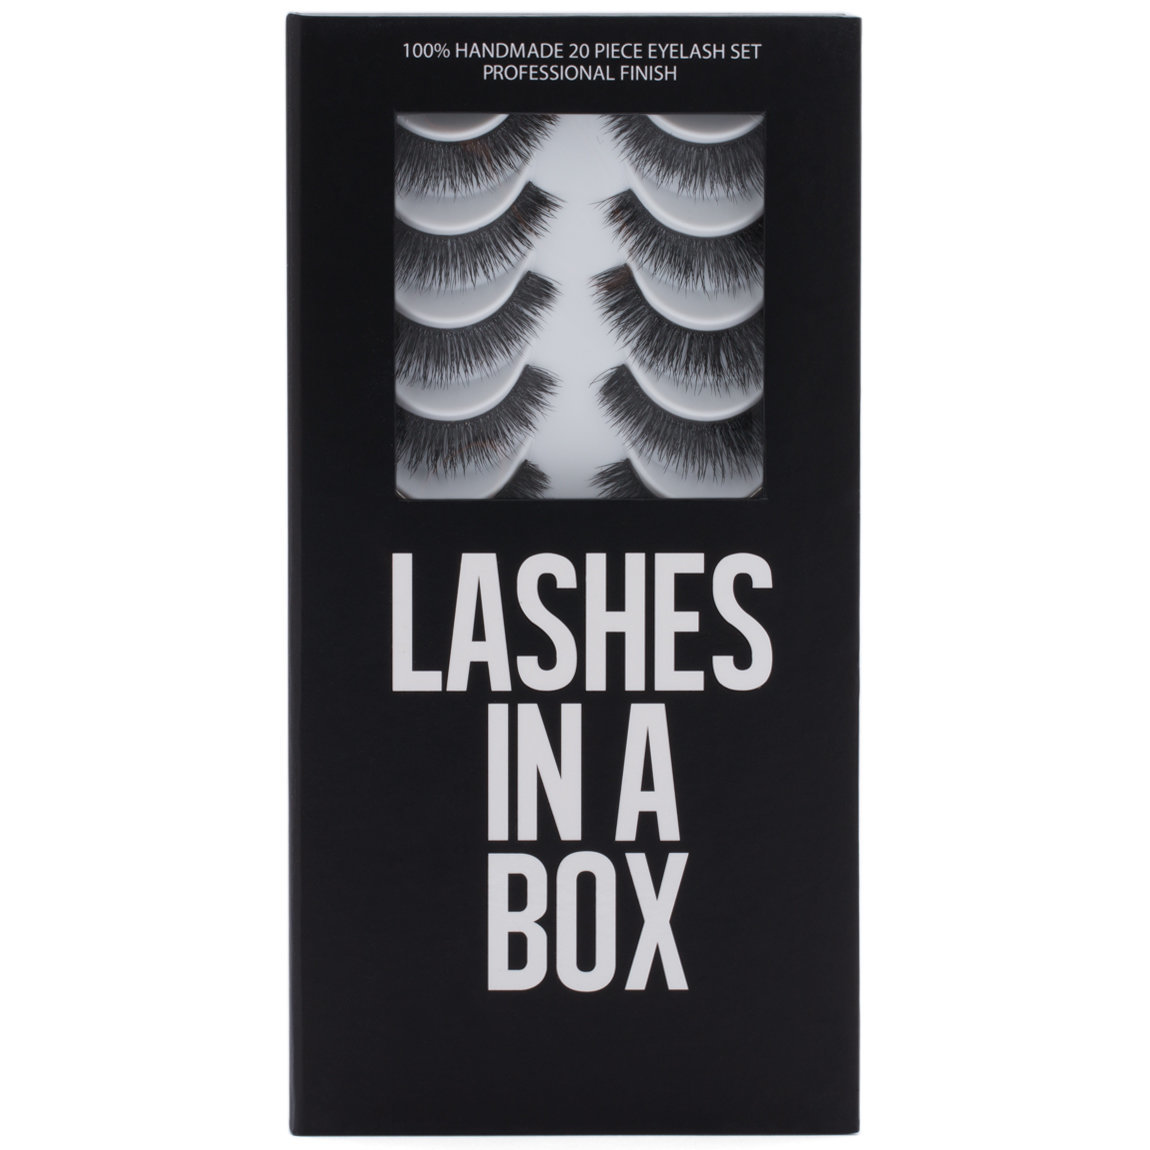 LASHES IN A BOX E5 product swatch.